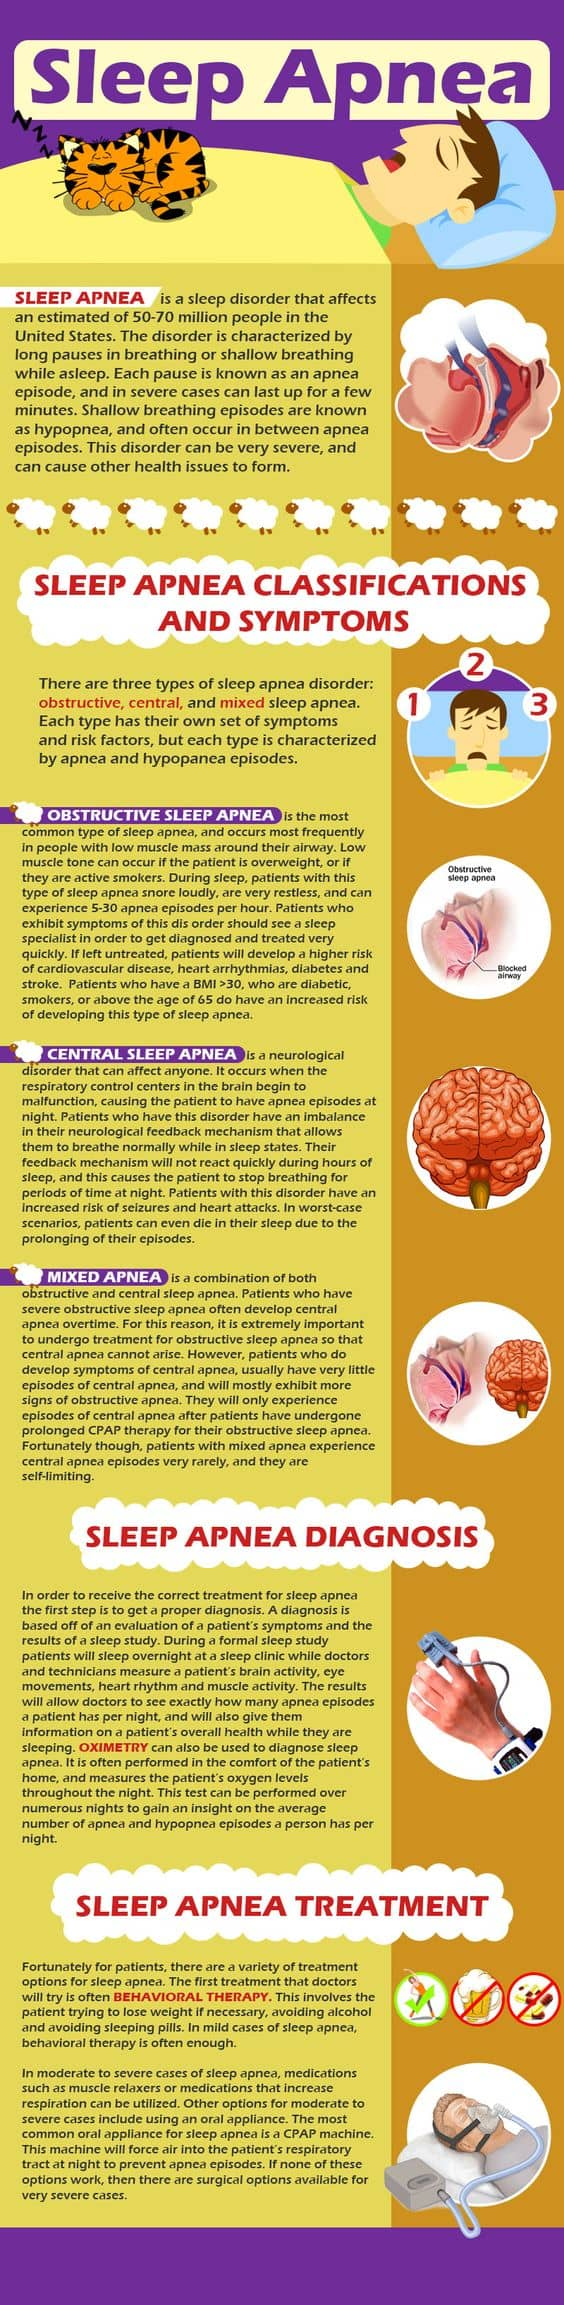 Sleep Apnea Symptoms